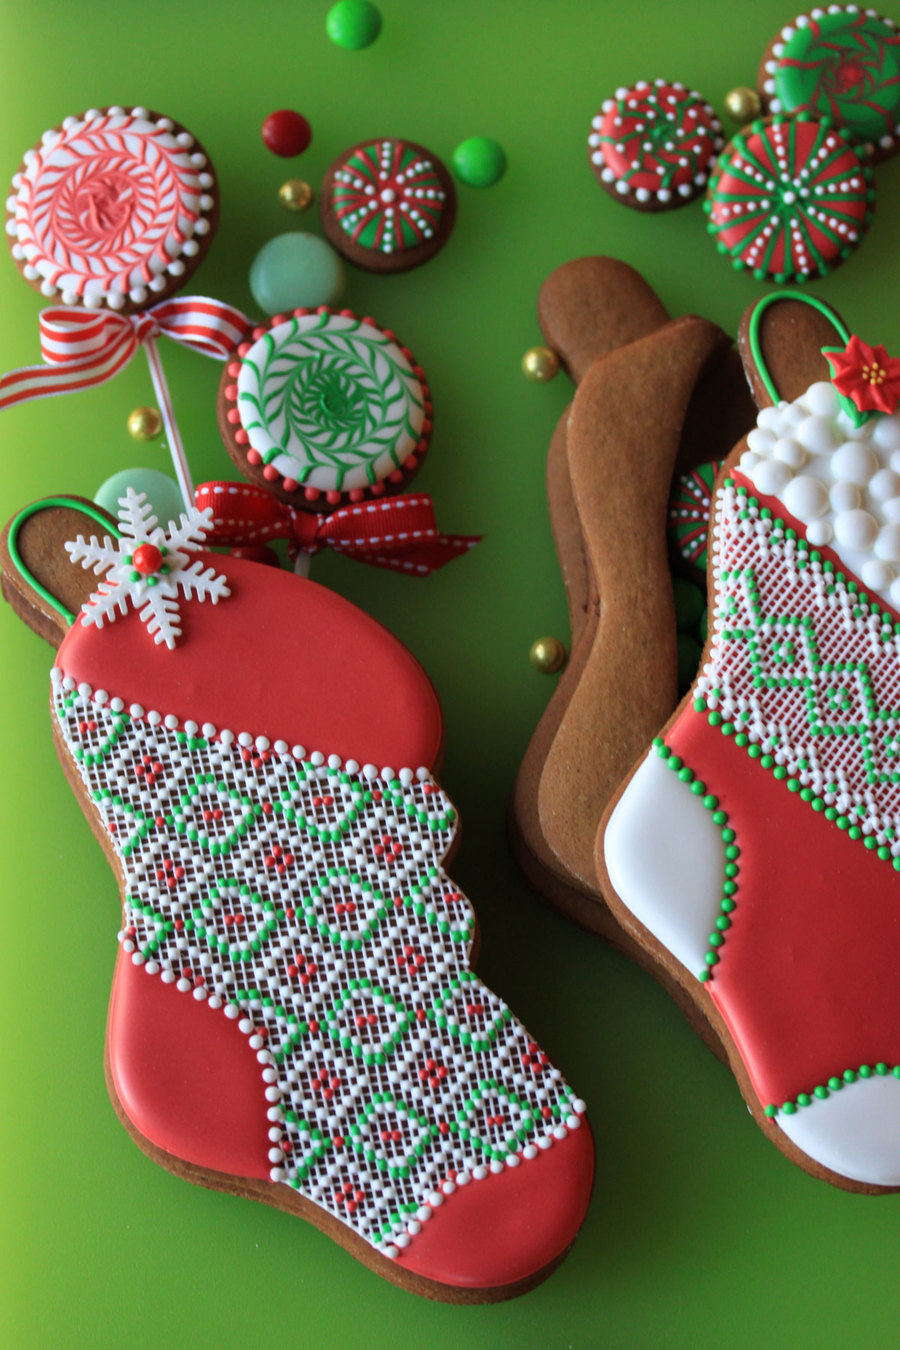 Stuff-Able Stocking Cookies  on Cake Central